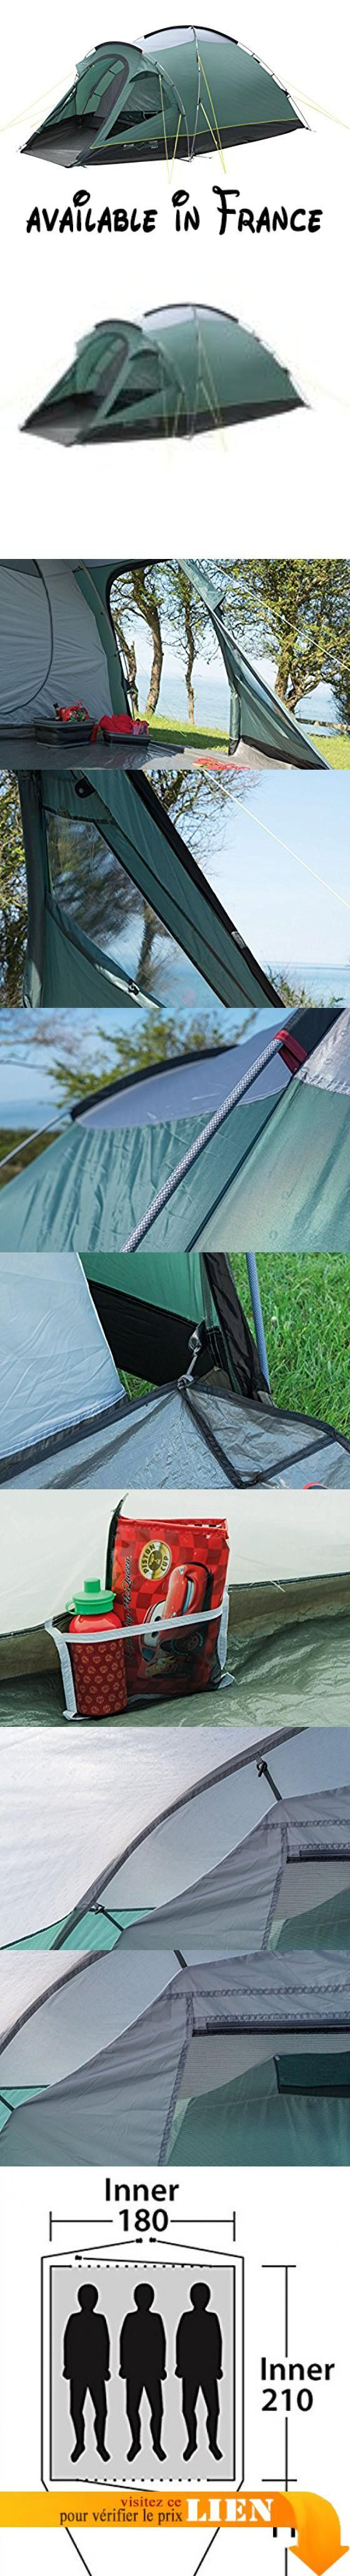 B01MYOBQM2 : Outwell Cloud 3 - Tente - gris/vert 2017 tente en tunnel. Cloud 3 offers ample storage and sleeping space for three people in this dome style lightweight tent. With fast easy pitching its sturdy stable frame delivers camping comfort and prote